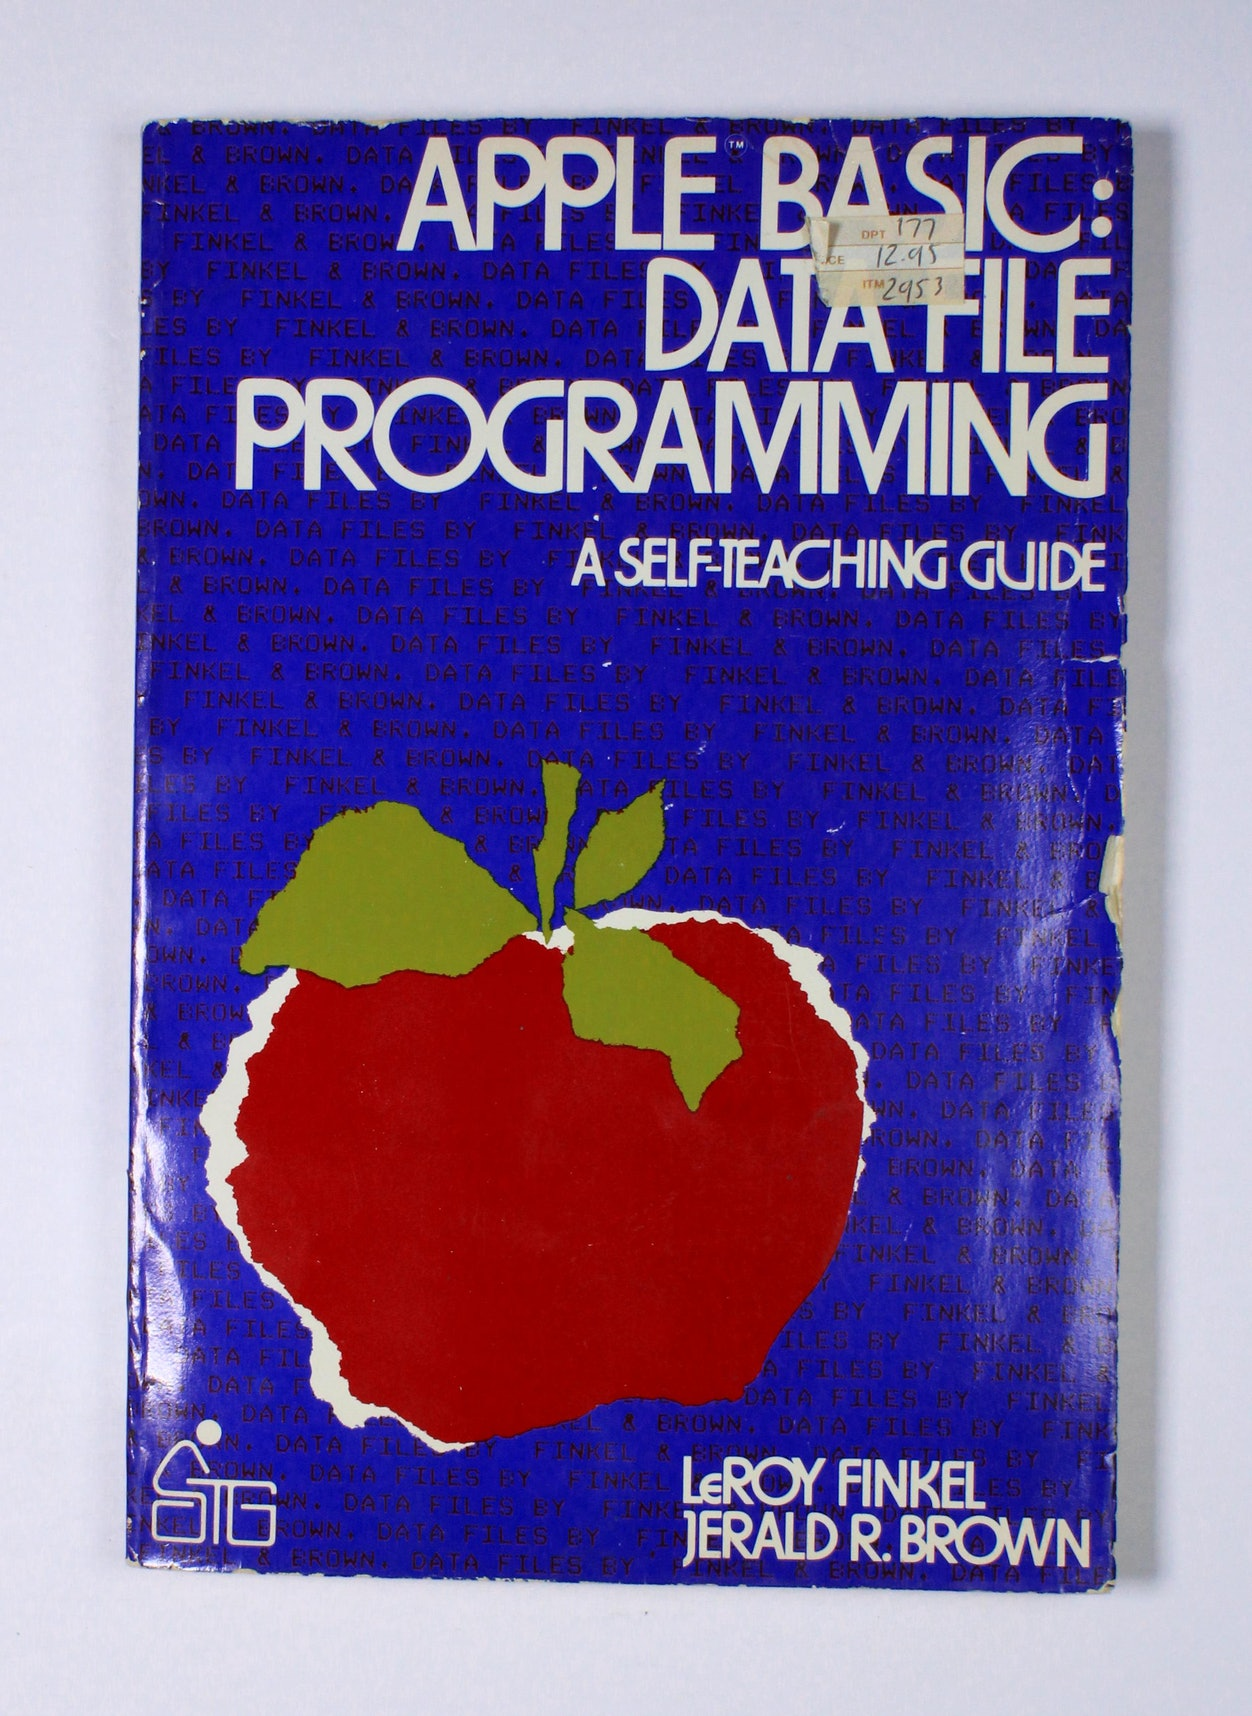 Apple BASIC: Data File Programming